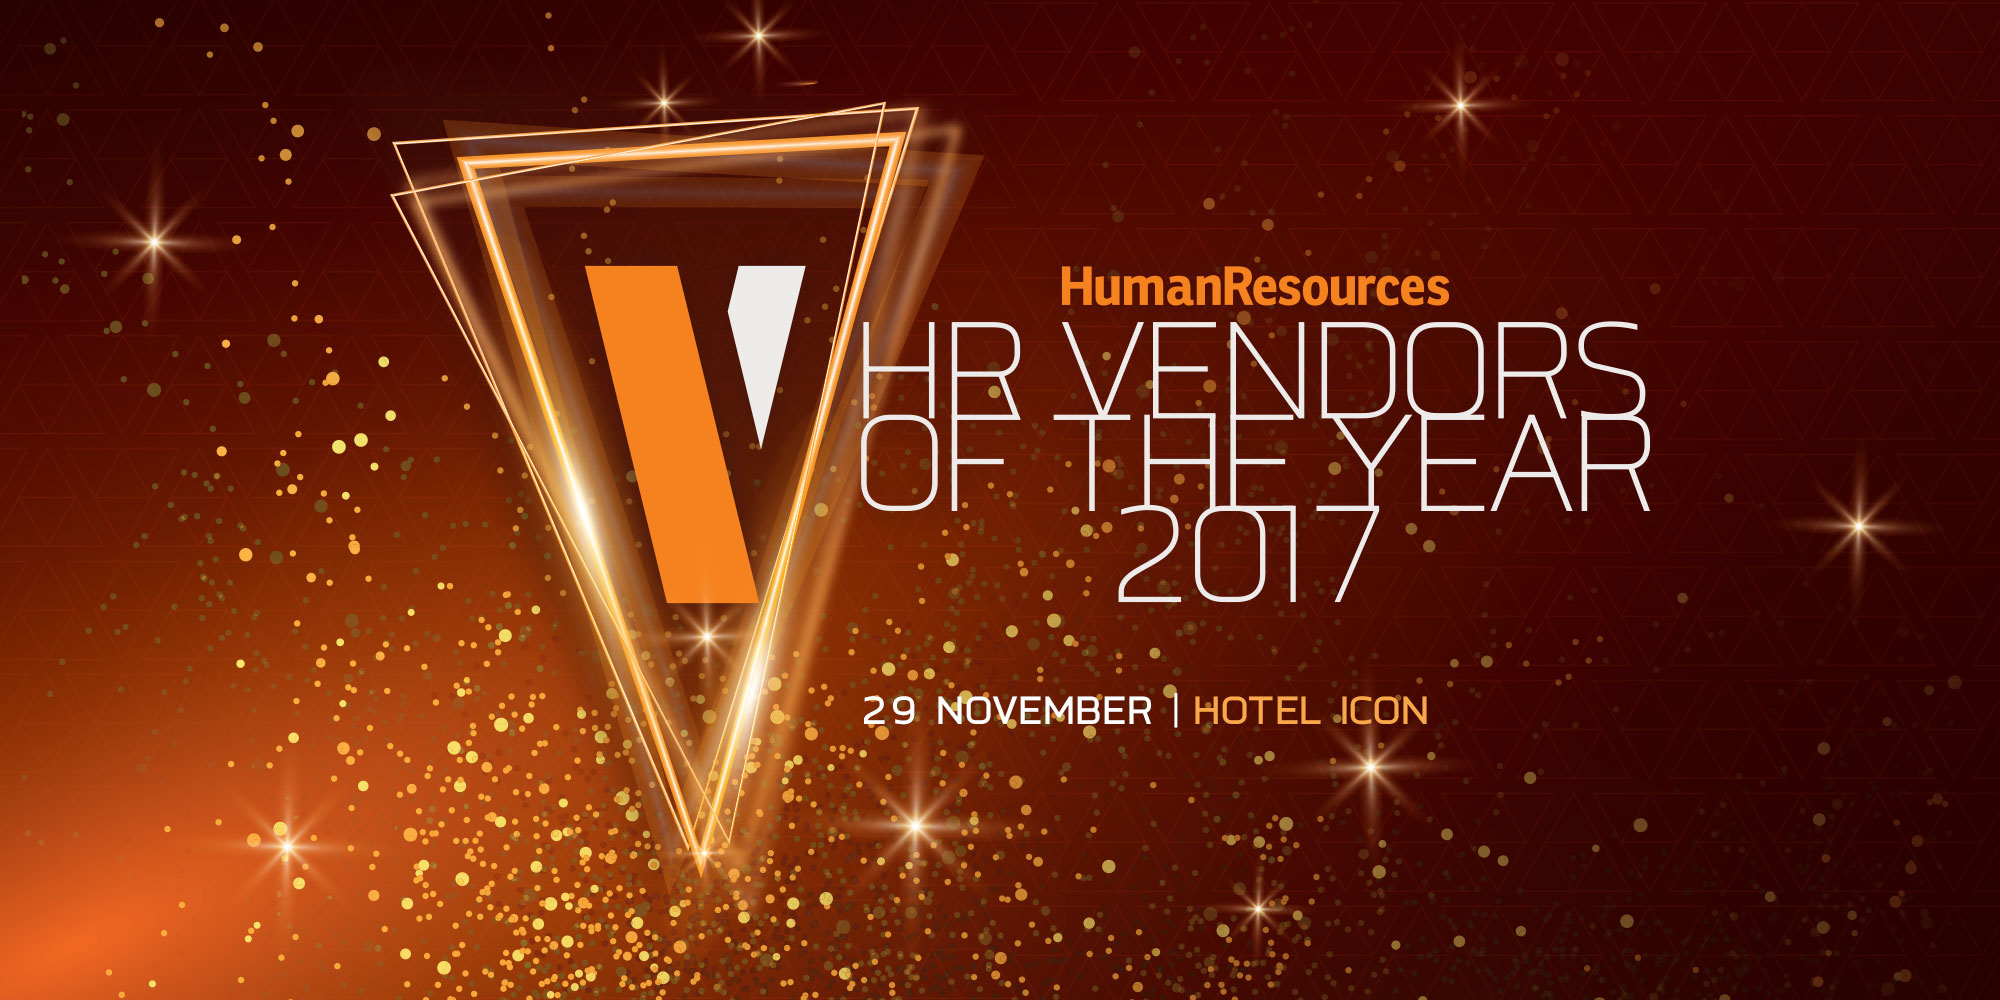 HR Vendors of the Year 2017